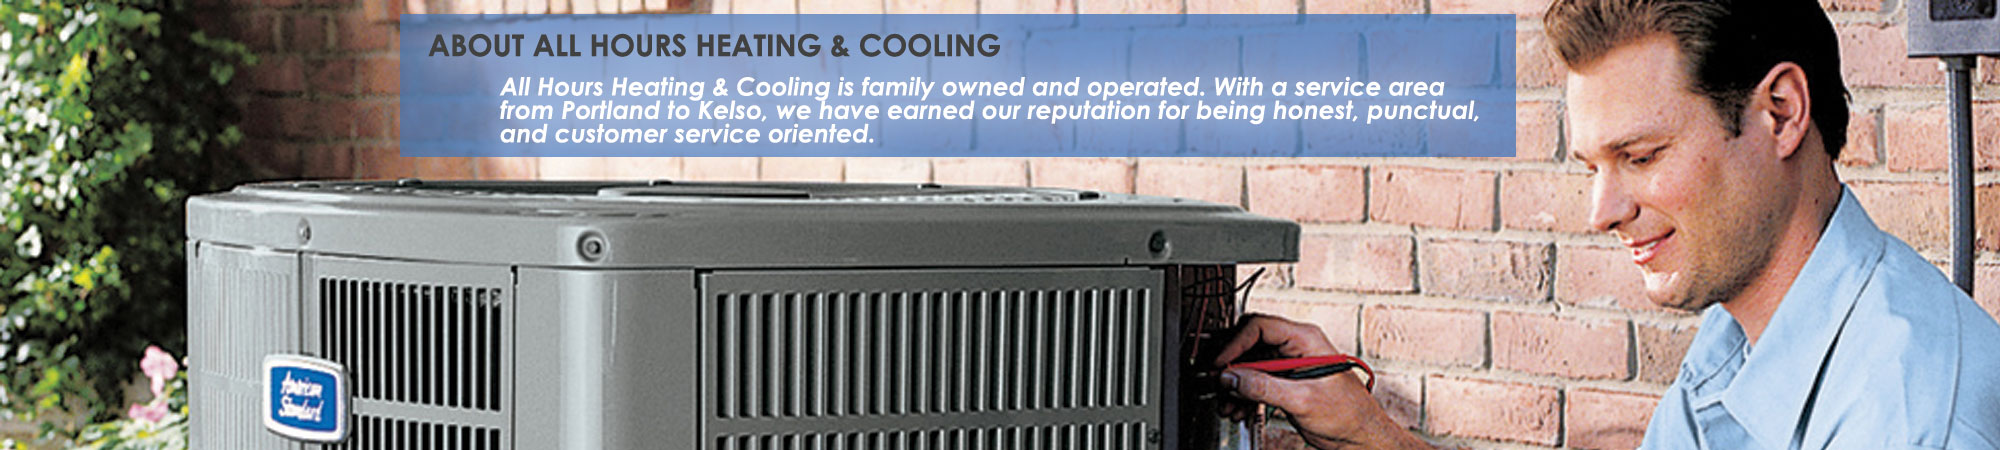 Slide-1-About-All-Hours-Heating-and-Cooling